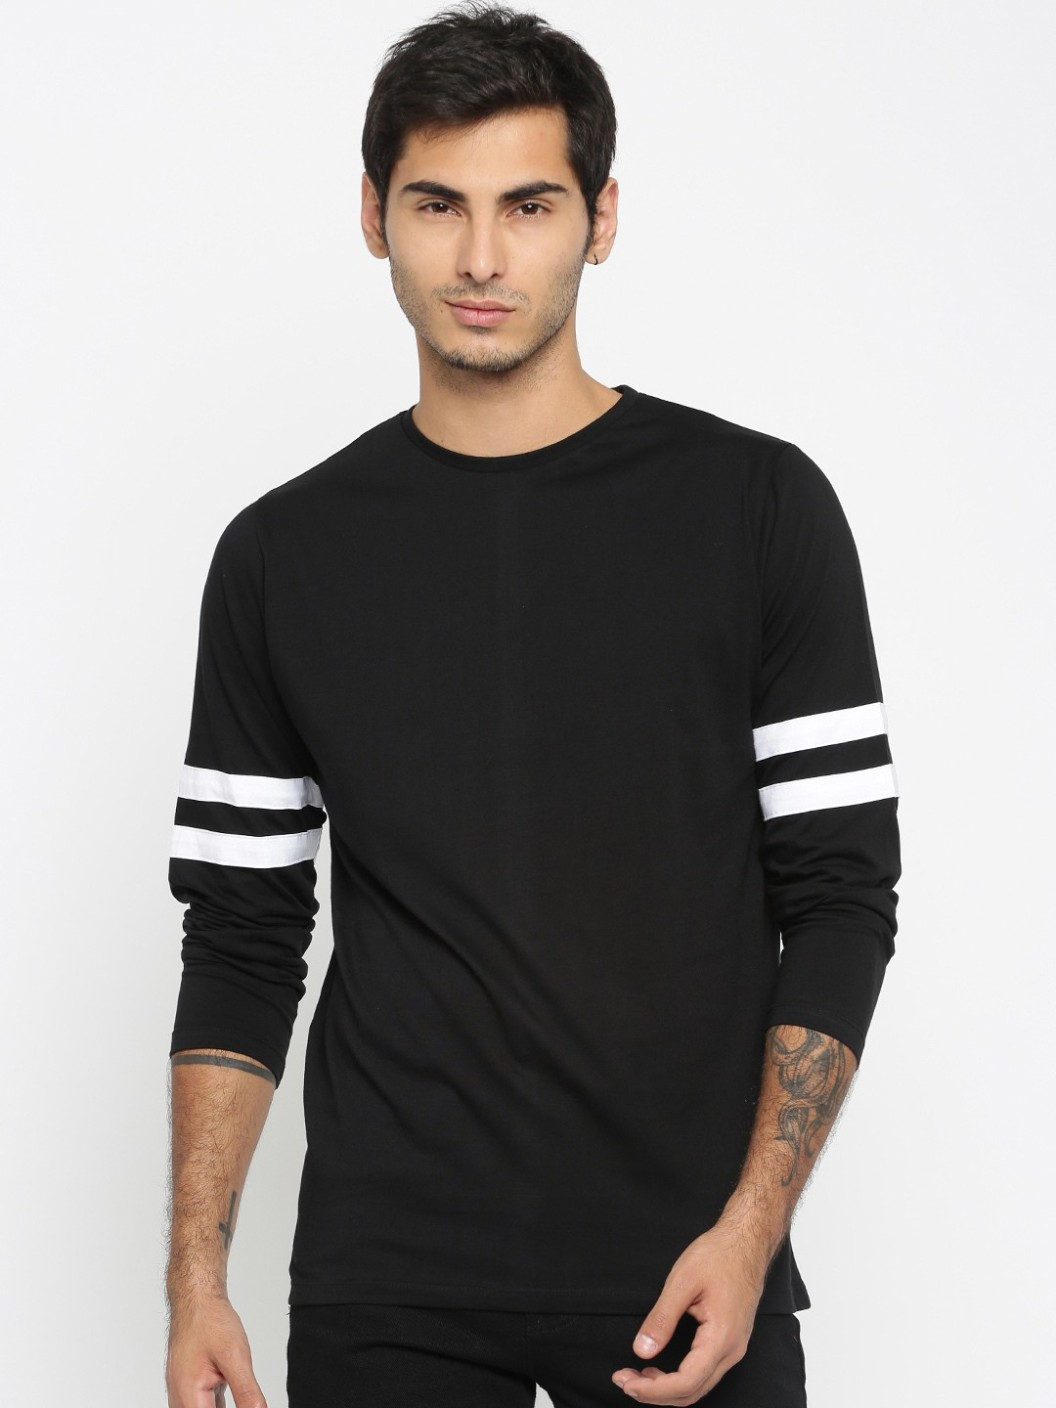 Shop for electronics, apparels & more using our Flipkart app Free shipping & COD. Black Shirts - Buy Black Shirts at India's Best Online Shopping Store. Check Price in India and Shop Online. Free Shipping Cash on Delivery Best Offers.